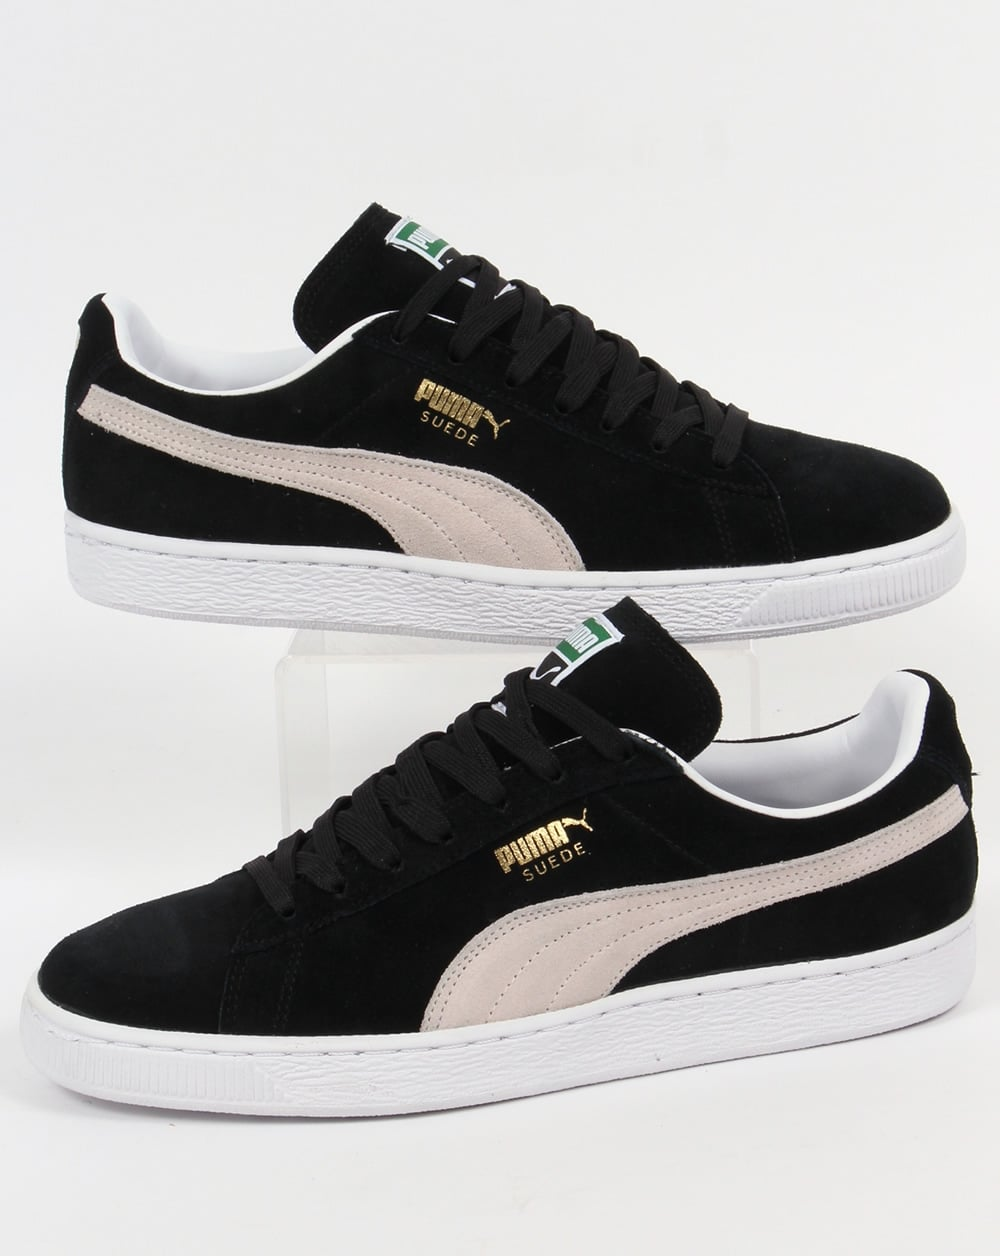 puma suede classic trainers black white shoes gum mens. Black Bedroom Furniture Sets. Home Design Ideas